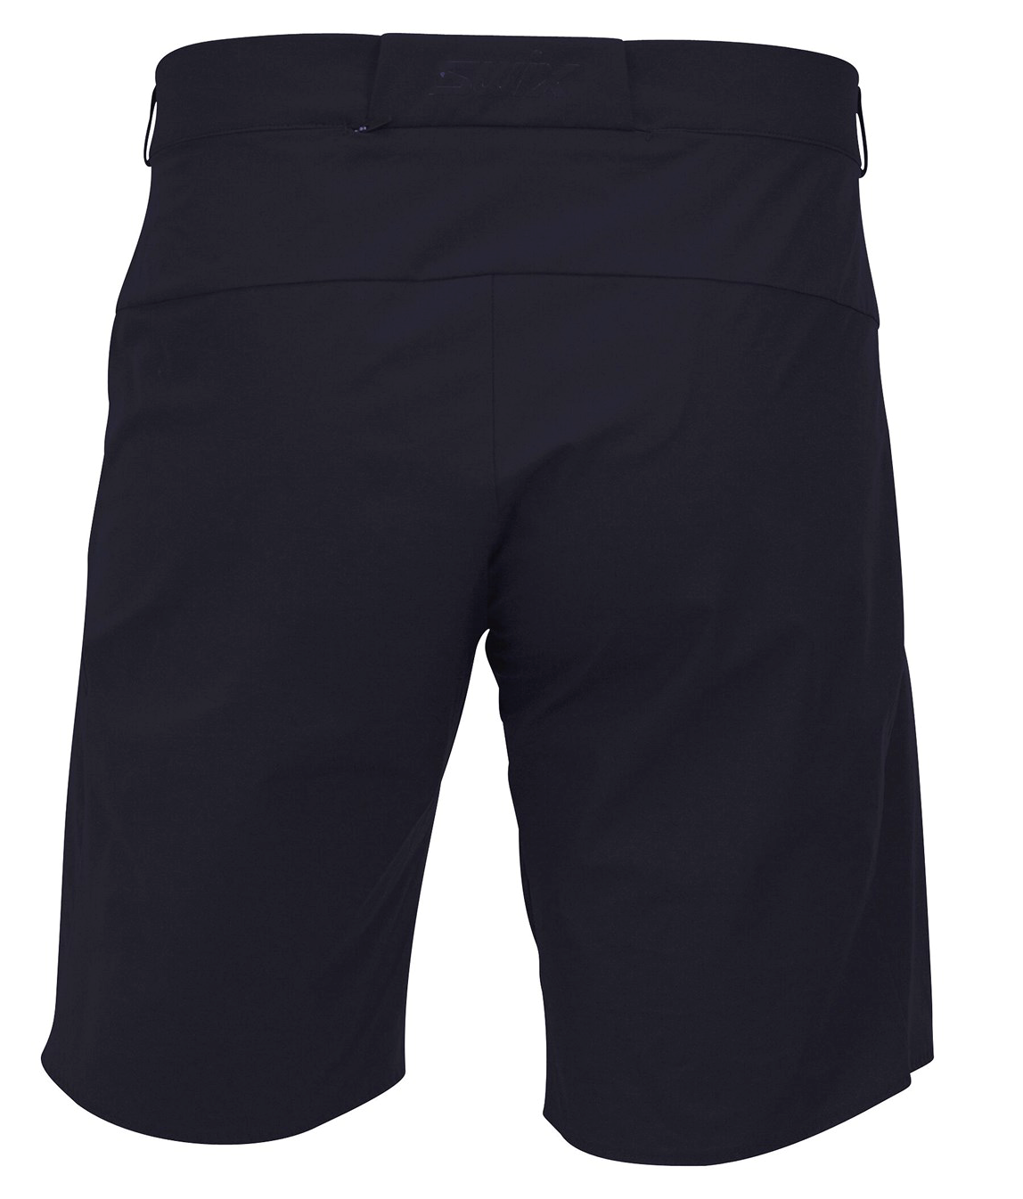 Bilde av Swix  Motion Adventure shorts M dark navy